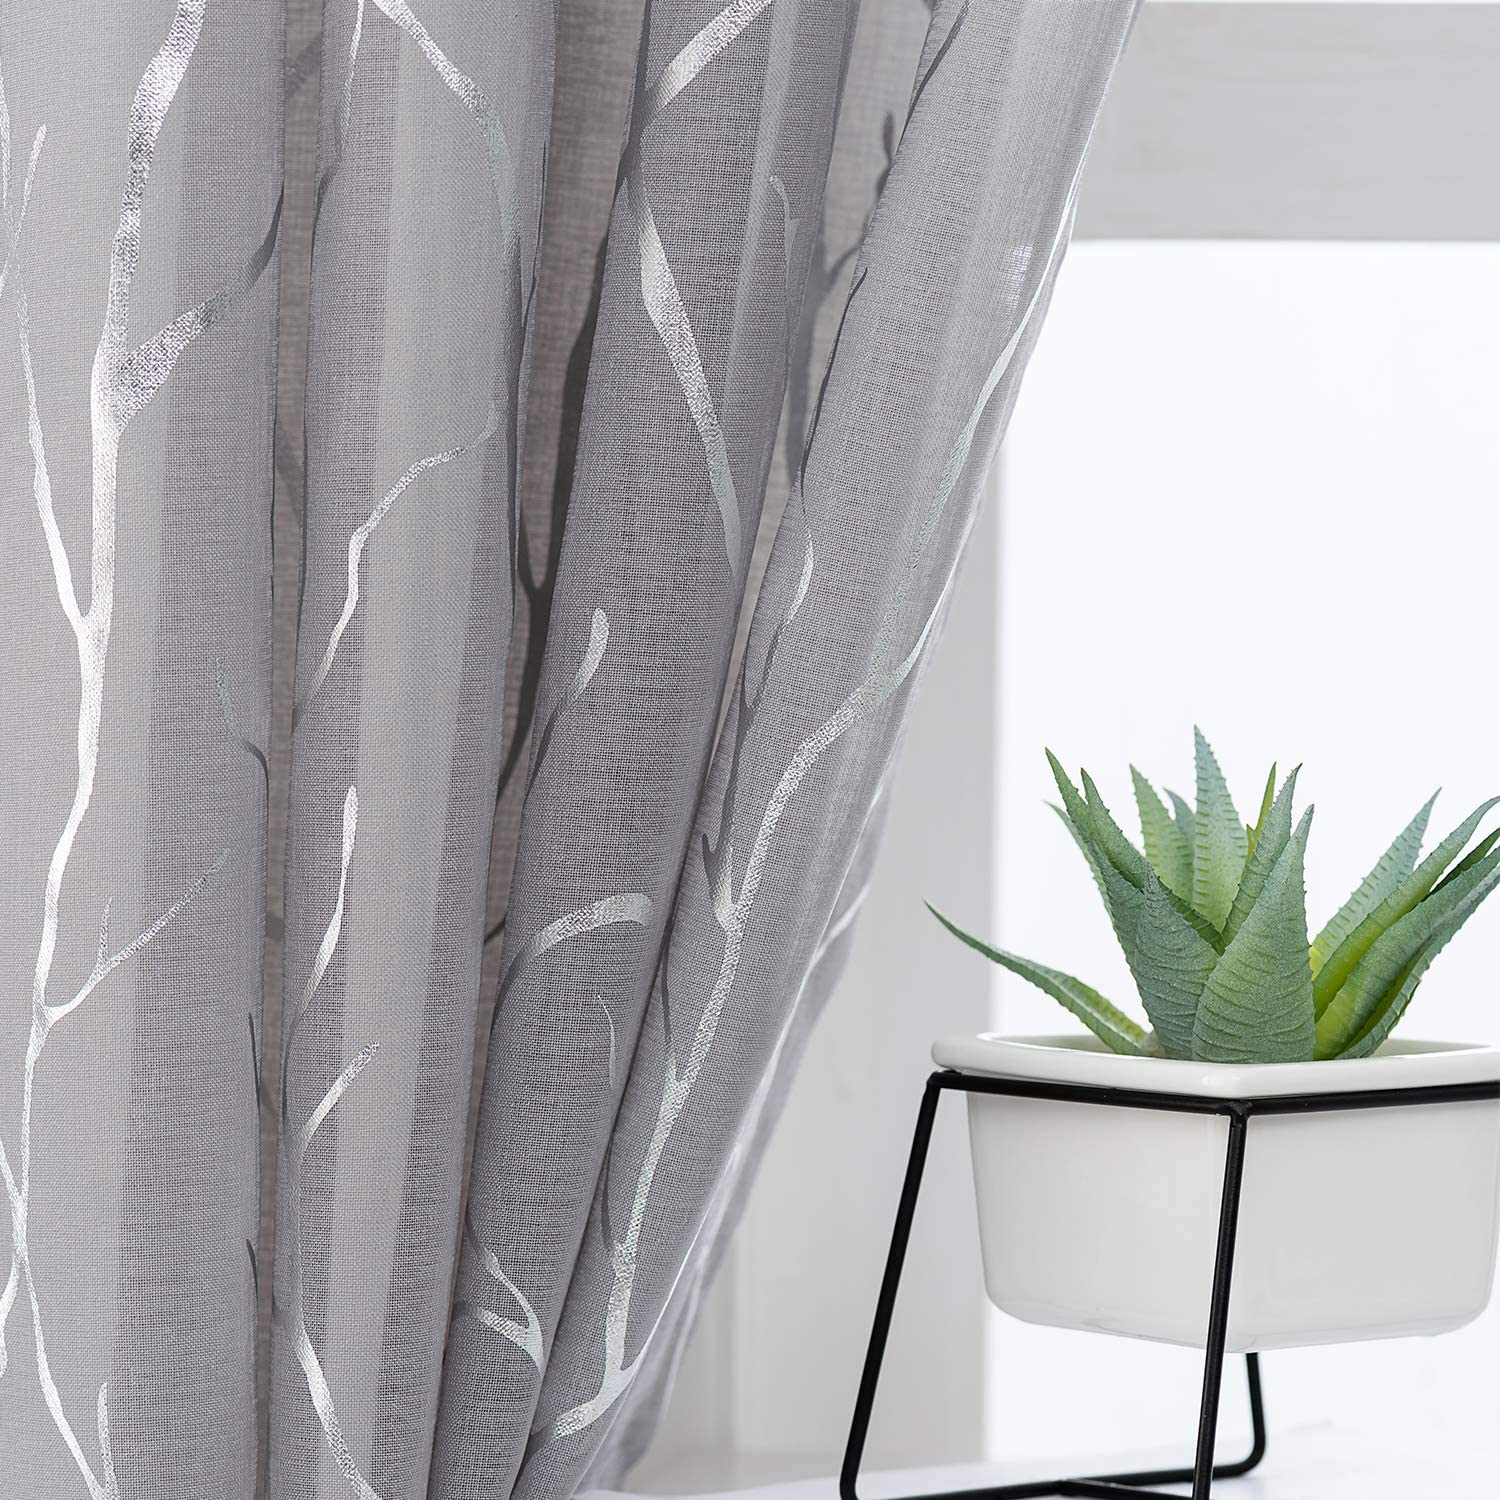 Kotile Tree Pattern Sheer Curtains - Metallic Silver Branch Printed Grommet Grey Sheer Curtains 63 Inch Length Light Filter Voile Drapes for Bedroom, 52 x 63 Inch, 2 Panels, Gray